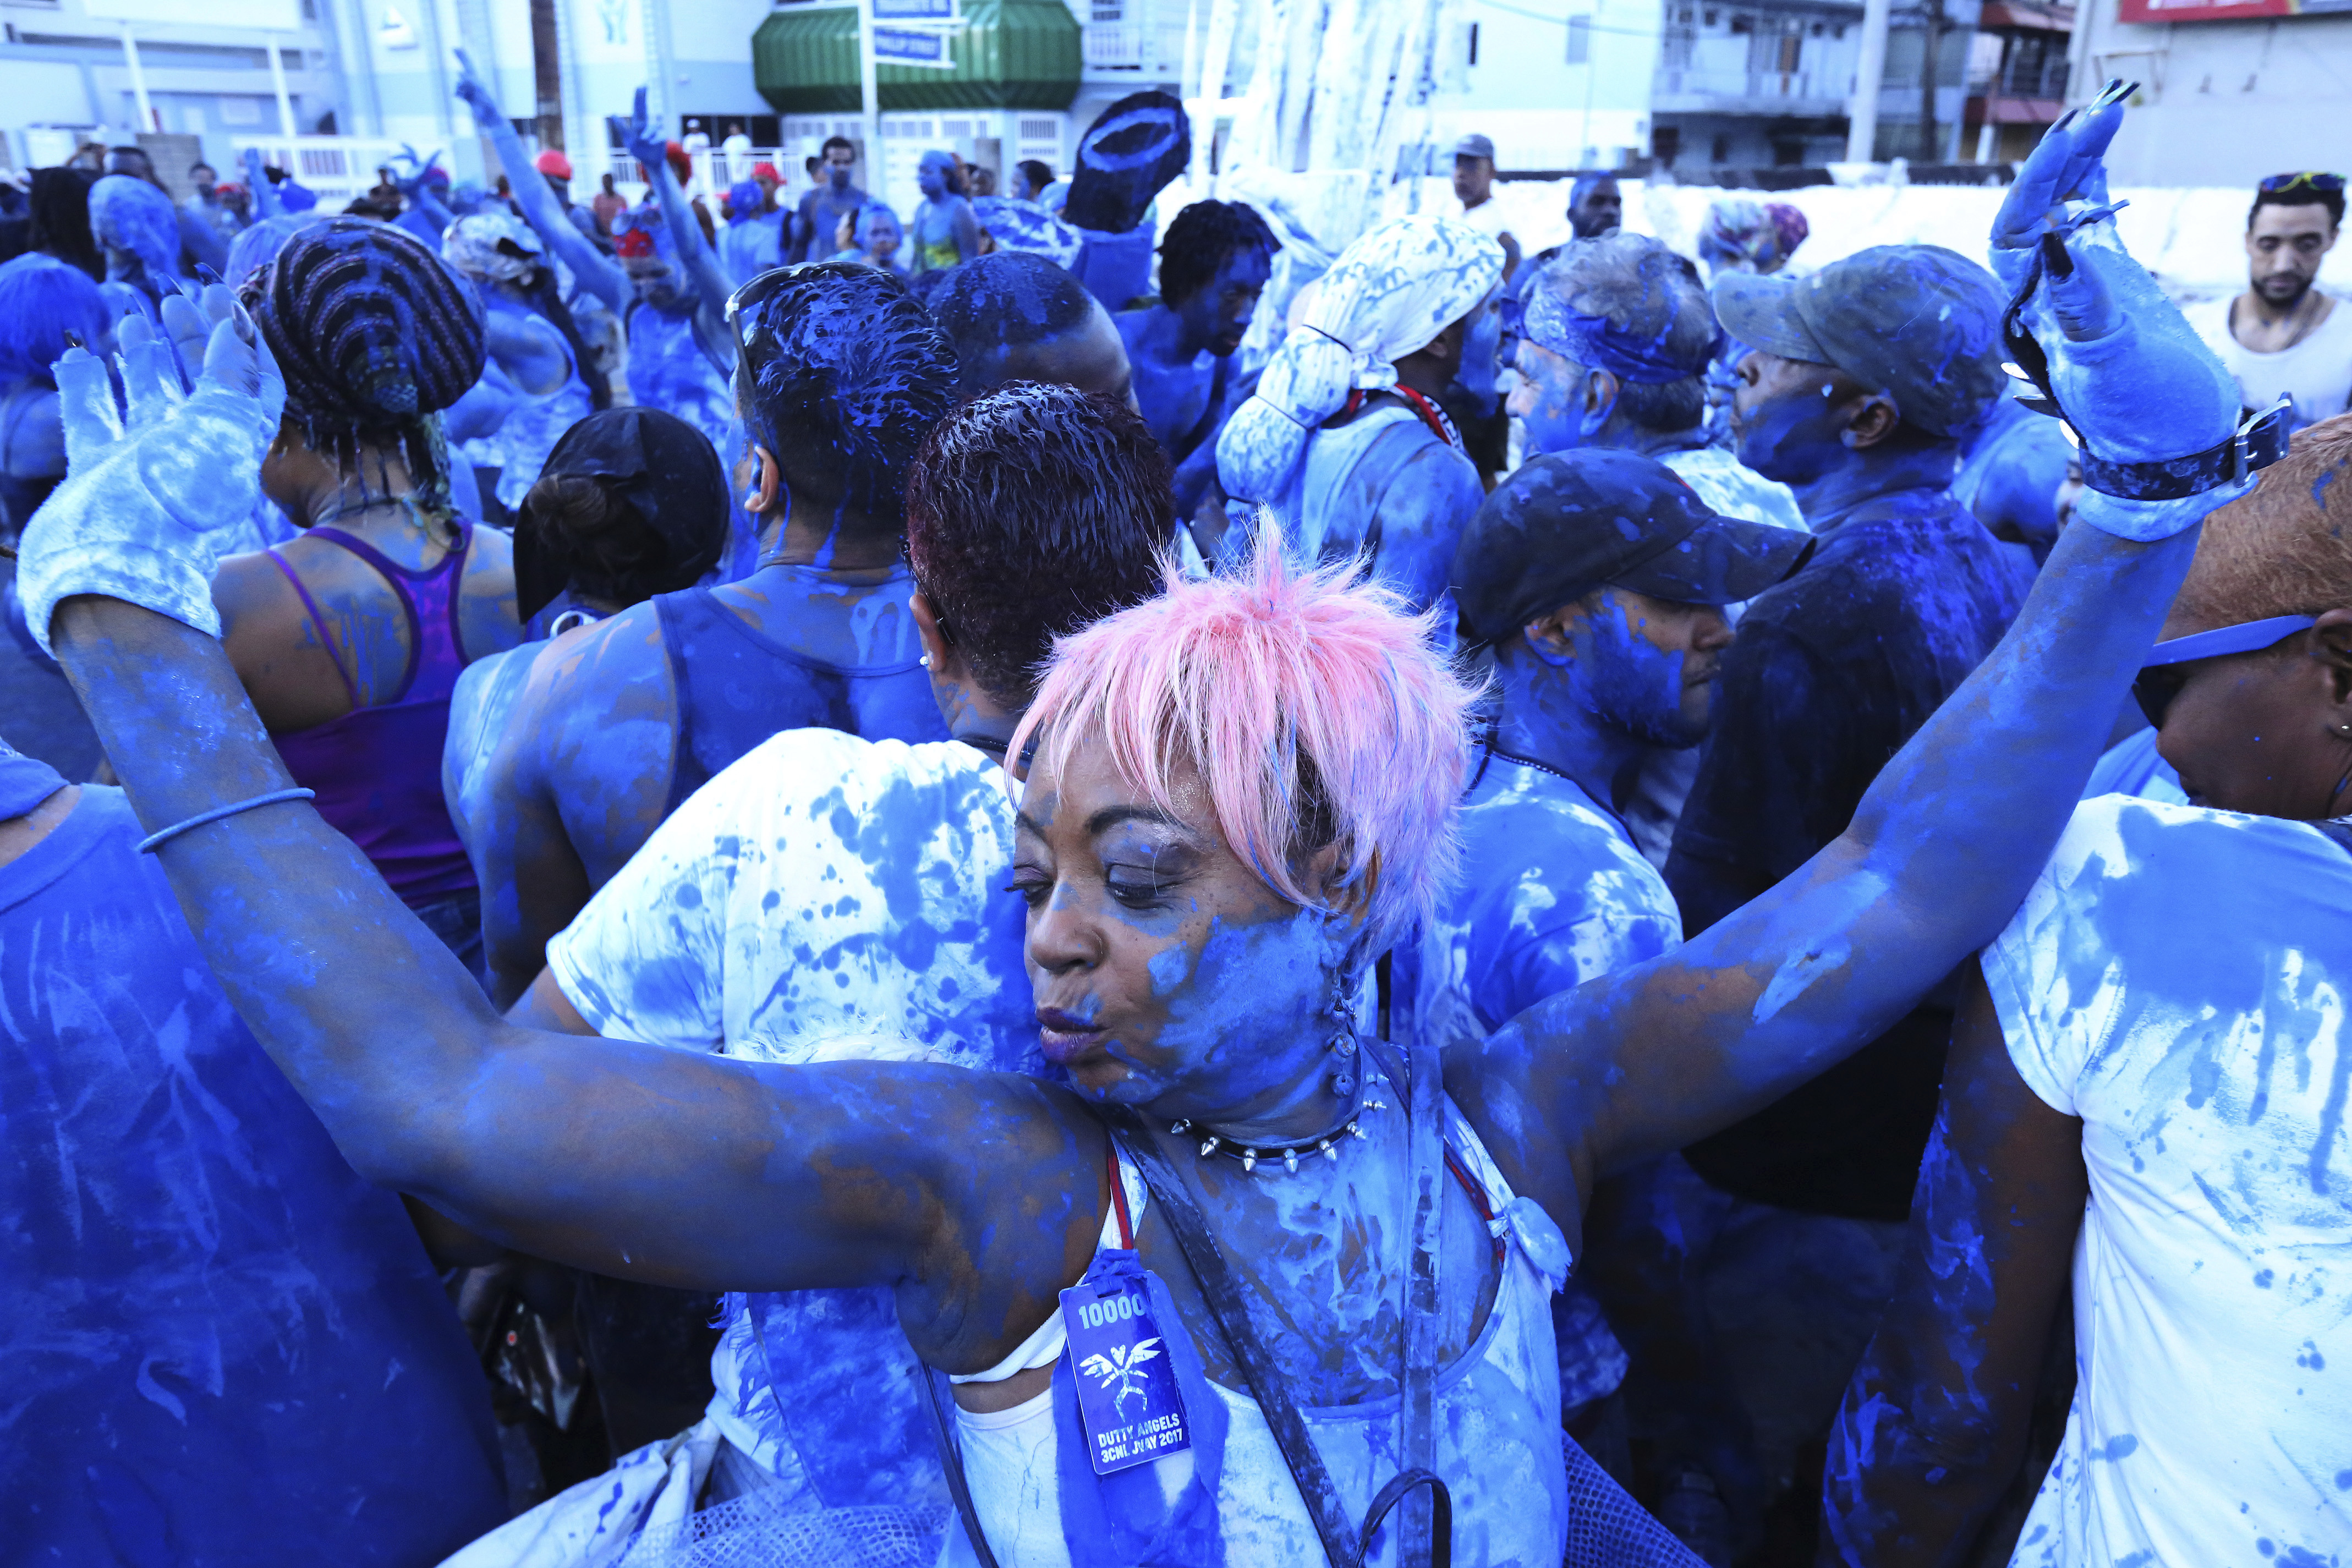 PORT OF SPAIN, TRINIDAD - FEBRUARY 27: J'ouvert revellers covered in blue paint dance and parade with the Rapso music band 3canal during the 20th anniversary celebration of their song Blue as part of Trinidad Carnival on February 27, 2017 in Port of Spain, Trinidad. (Photo by Sean Drakes/LatinContent/Getty Images)